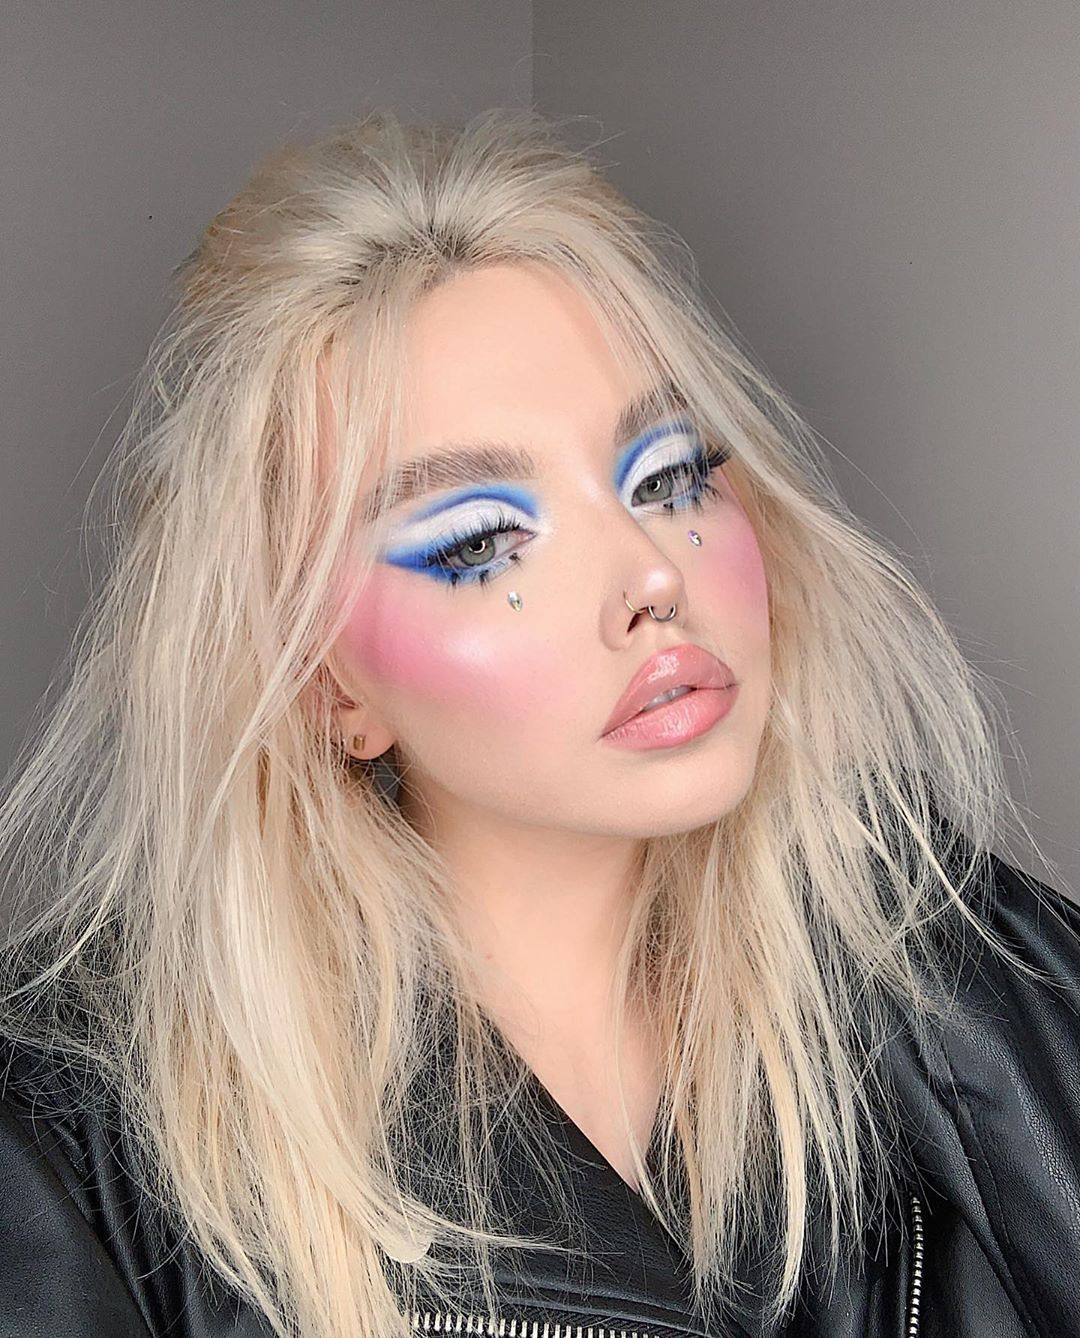 """erica' makeup artist on Instagram: """"80s⚡️ as soon as i got new @hauslabs palette it gave me major 80s vibes somehow so i messed up my hair and this happened девочки, в 80-х не…"""""""